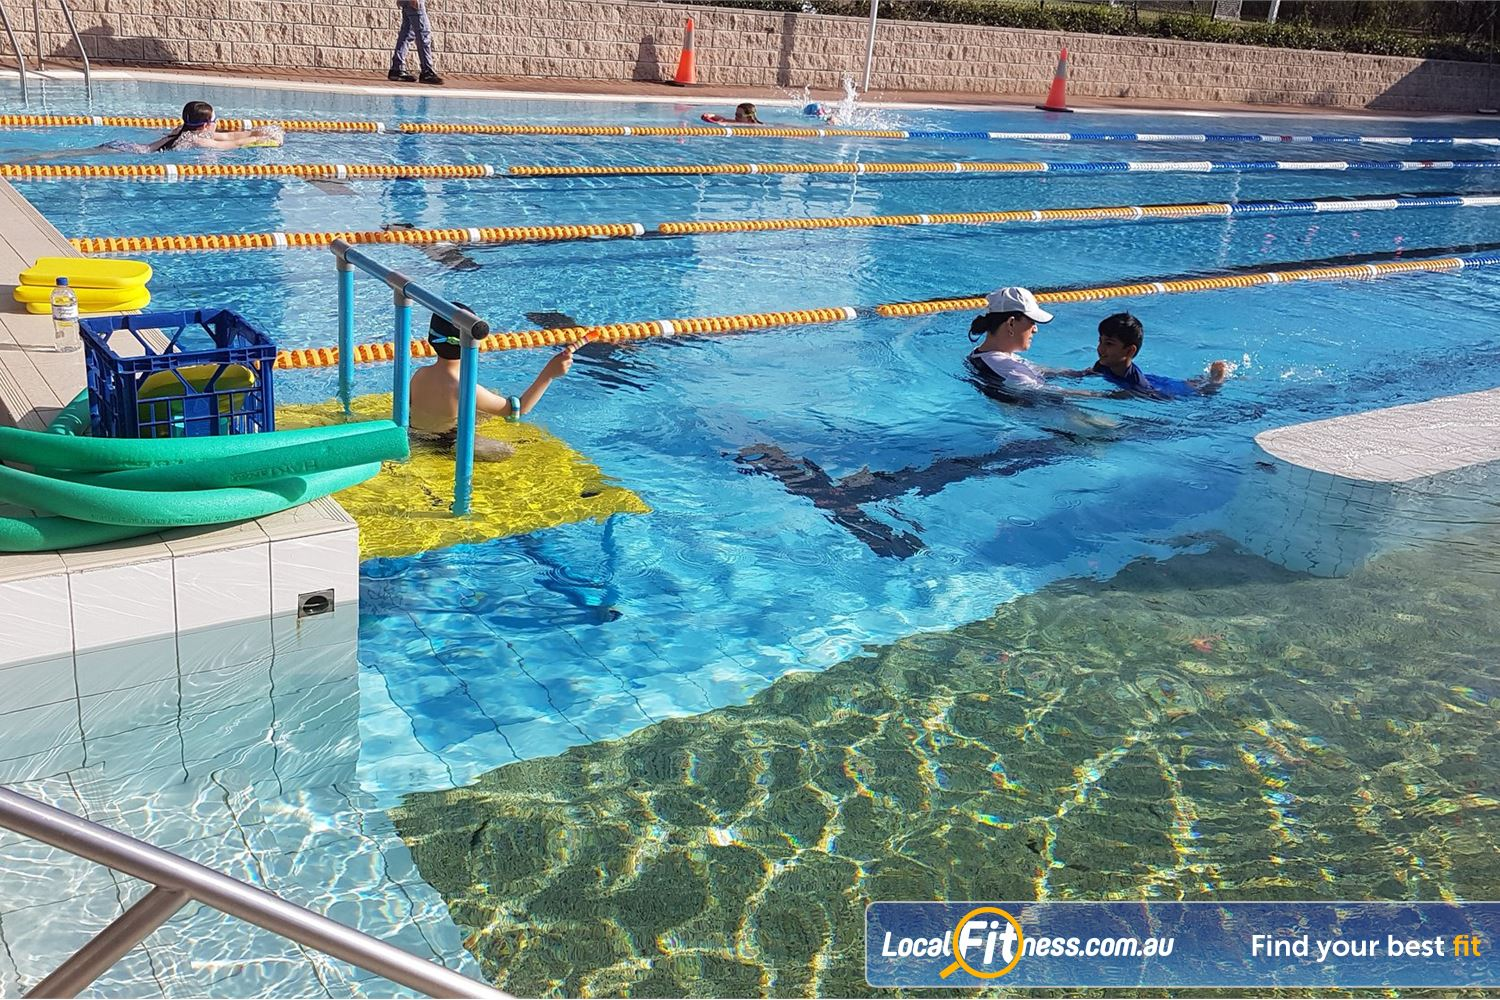 North Ryde Fitness & Aquatic North Ryde Our North Ryde swimming school will help your kids learn to swim.